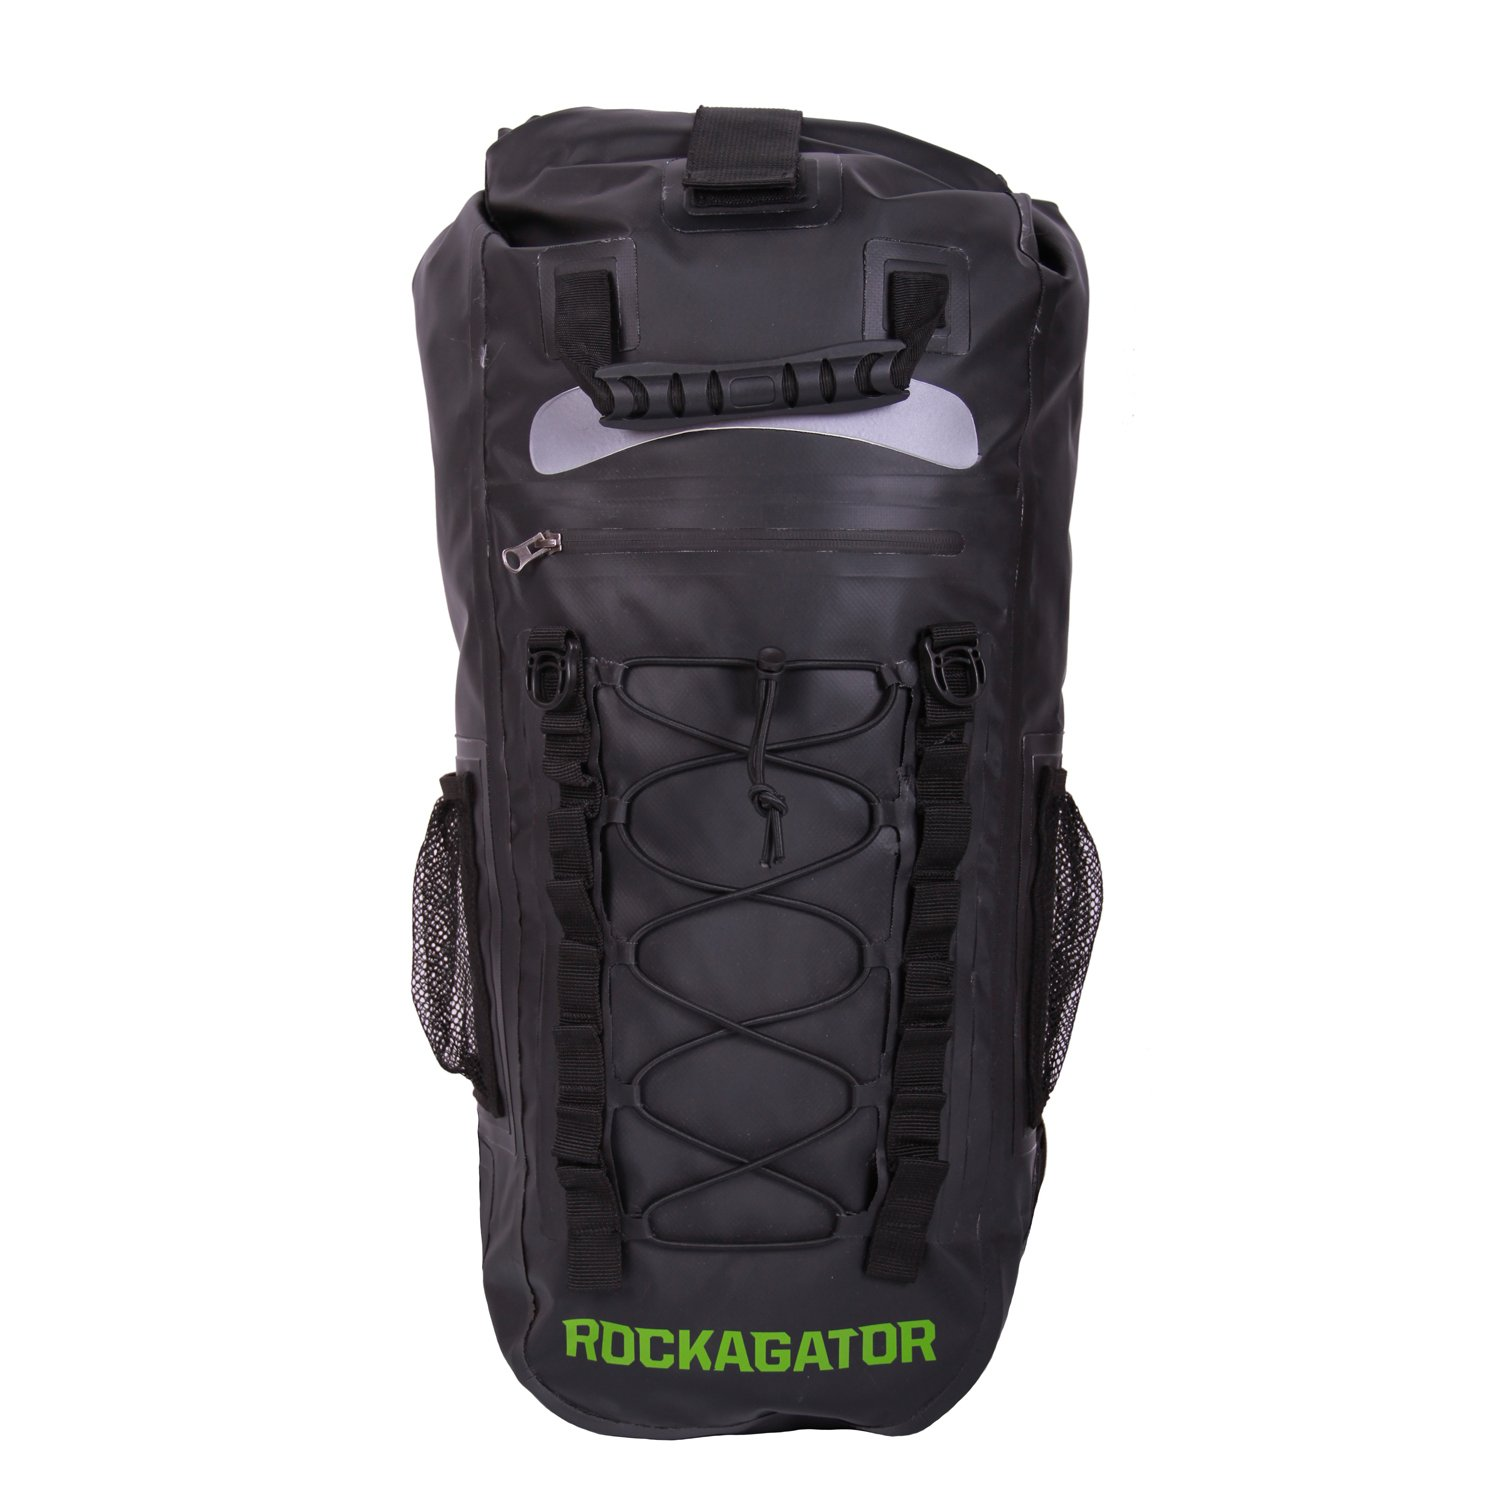 Rockagator GEN3 BACKPACK REVIEW